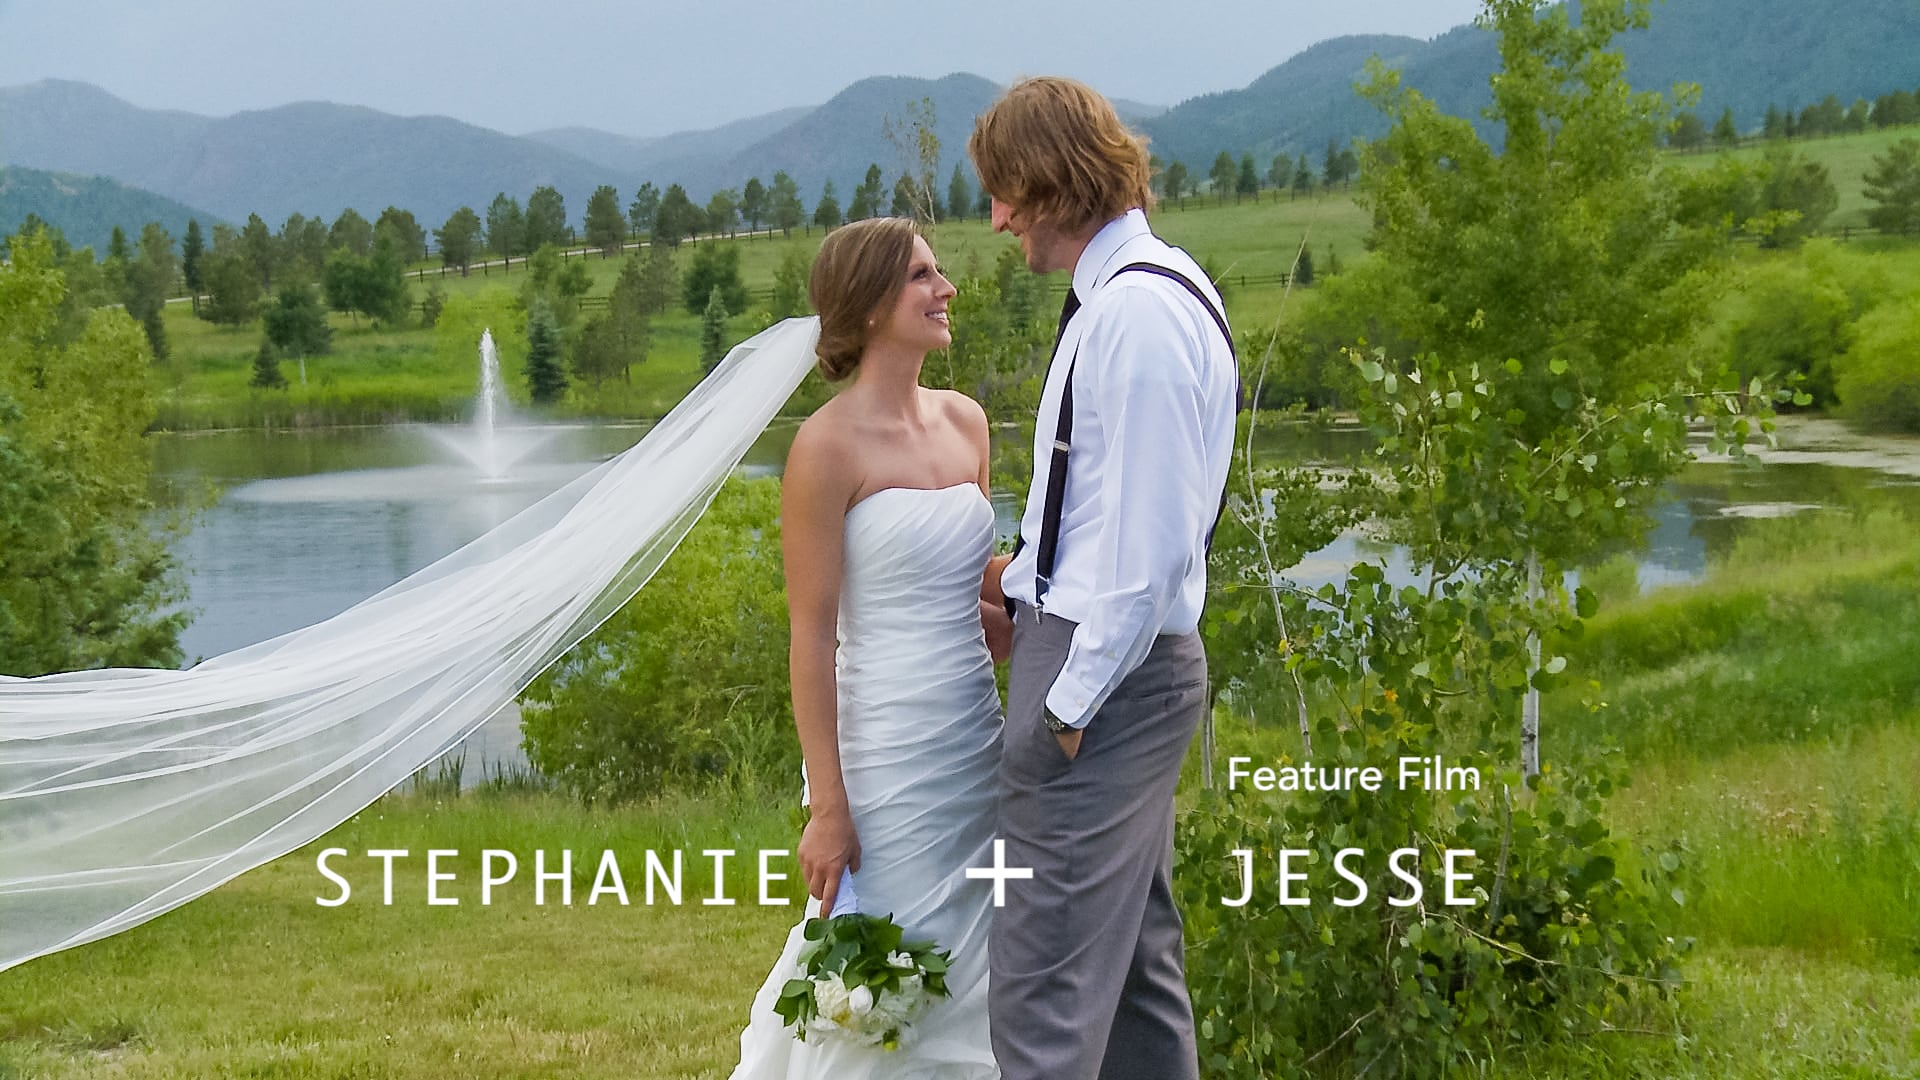 Stephanie + Jesse Wedding Feature Film